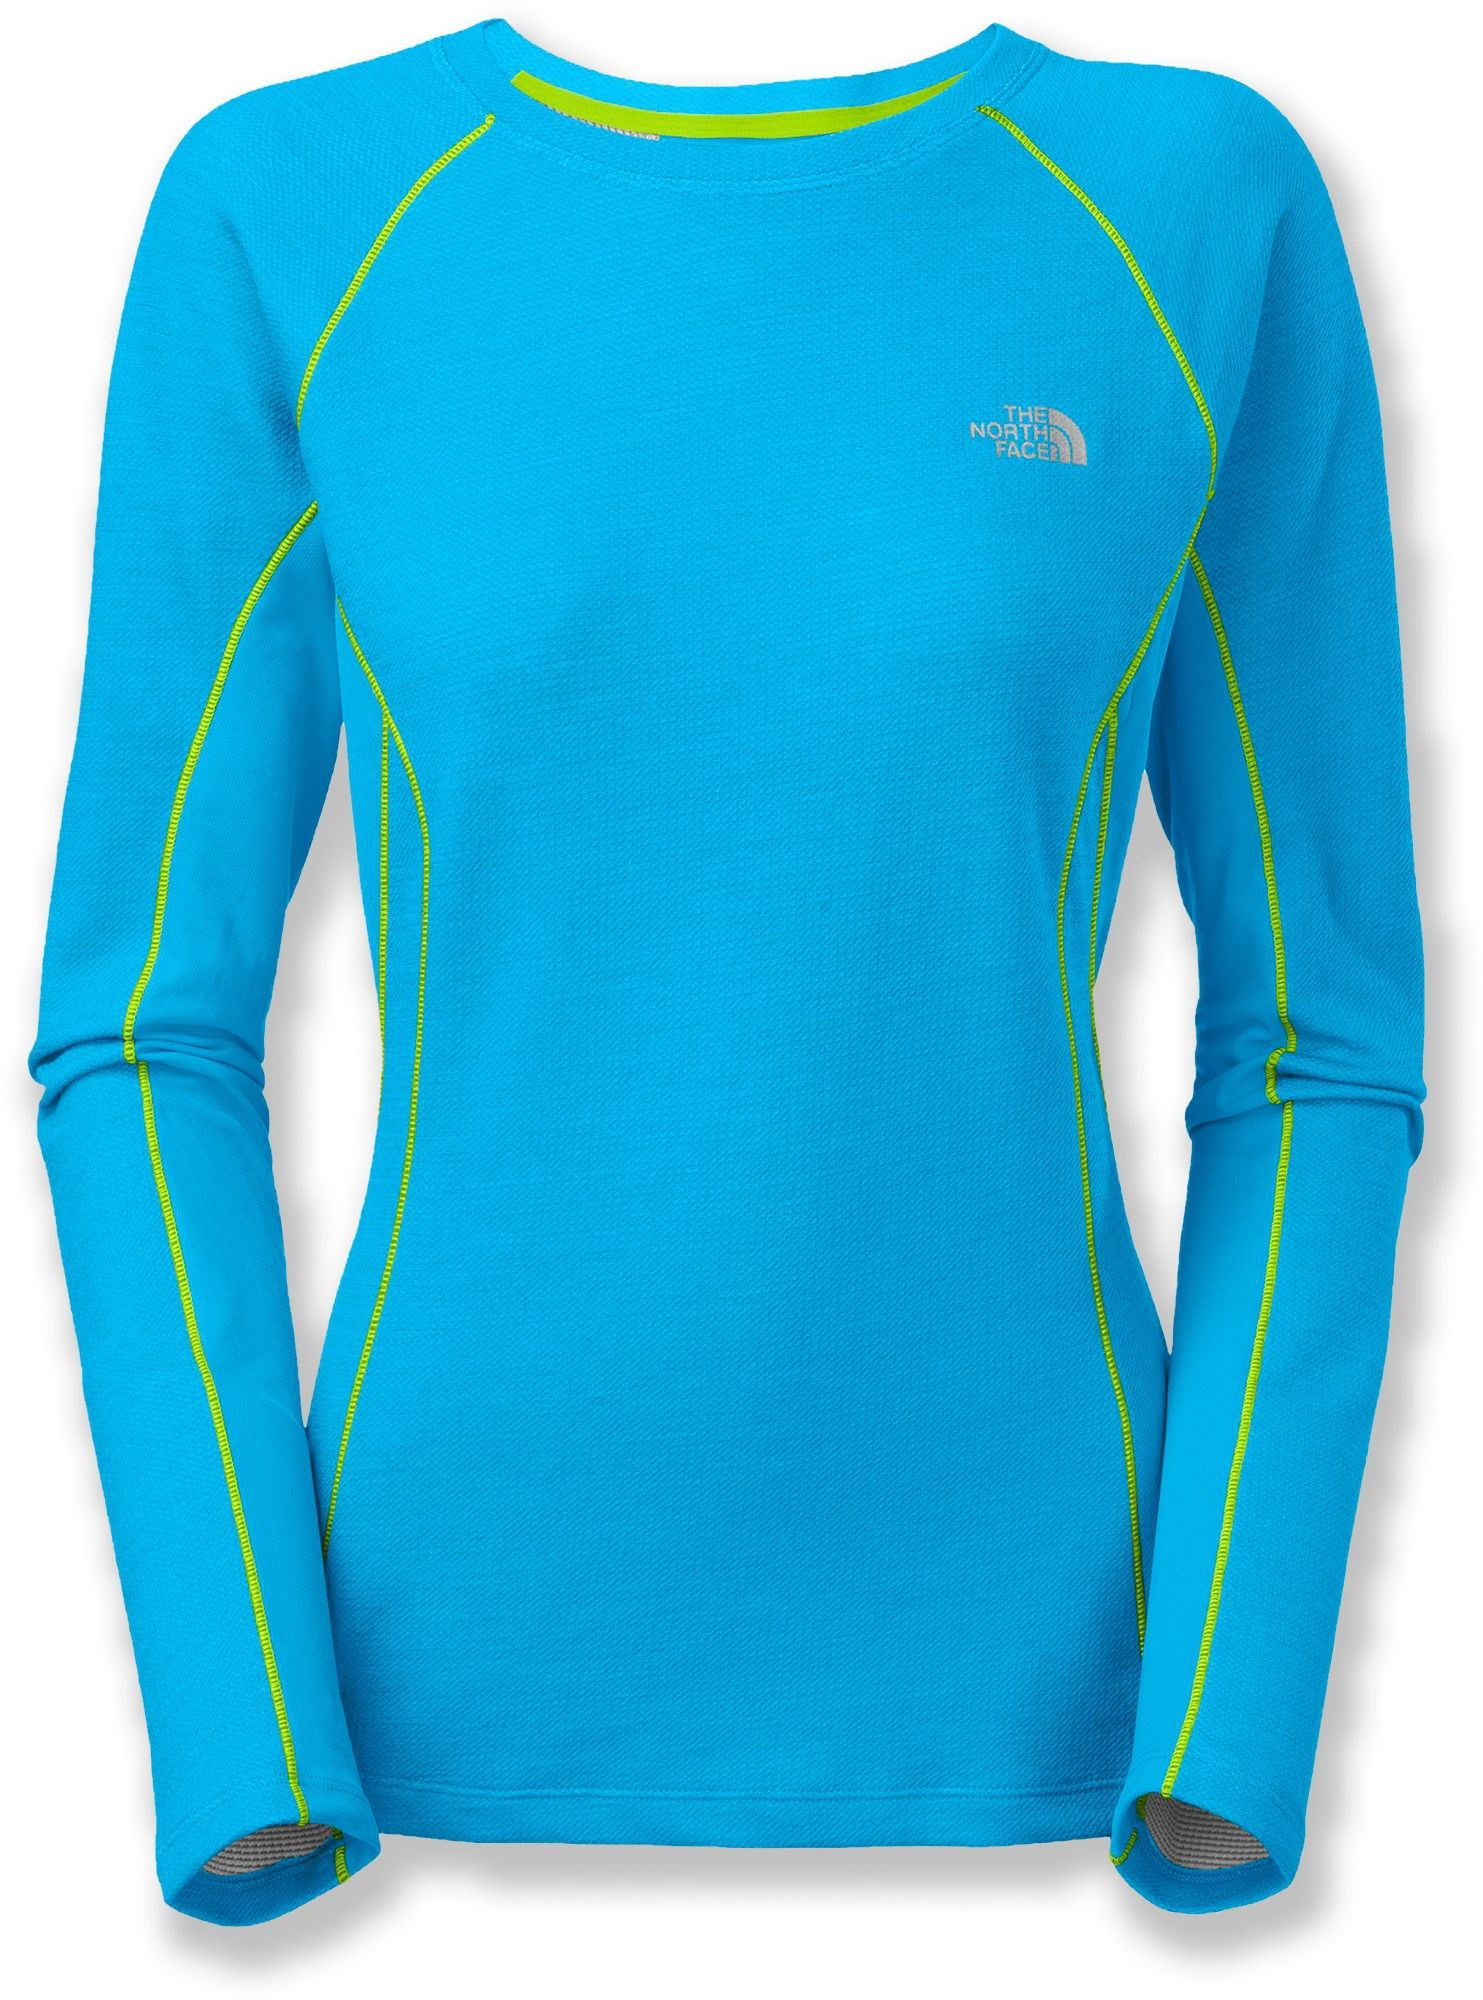 2b171776d4d The North Face Isotherm women s shirt uses a warm blend of merino wool and  FlashDry™ fibers to help regulate your core temperature.